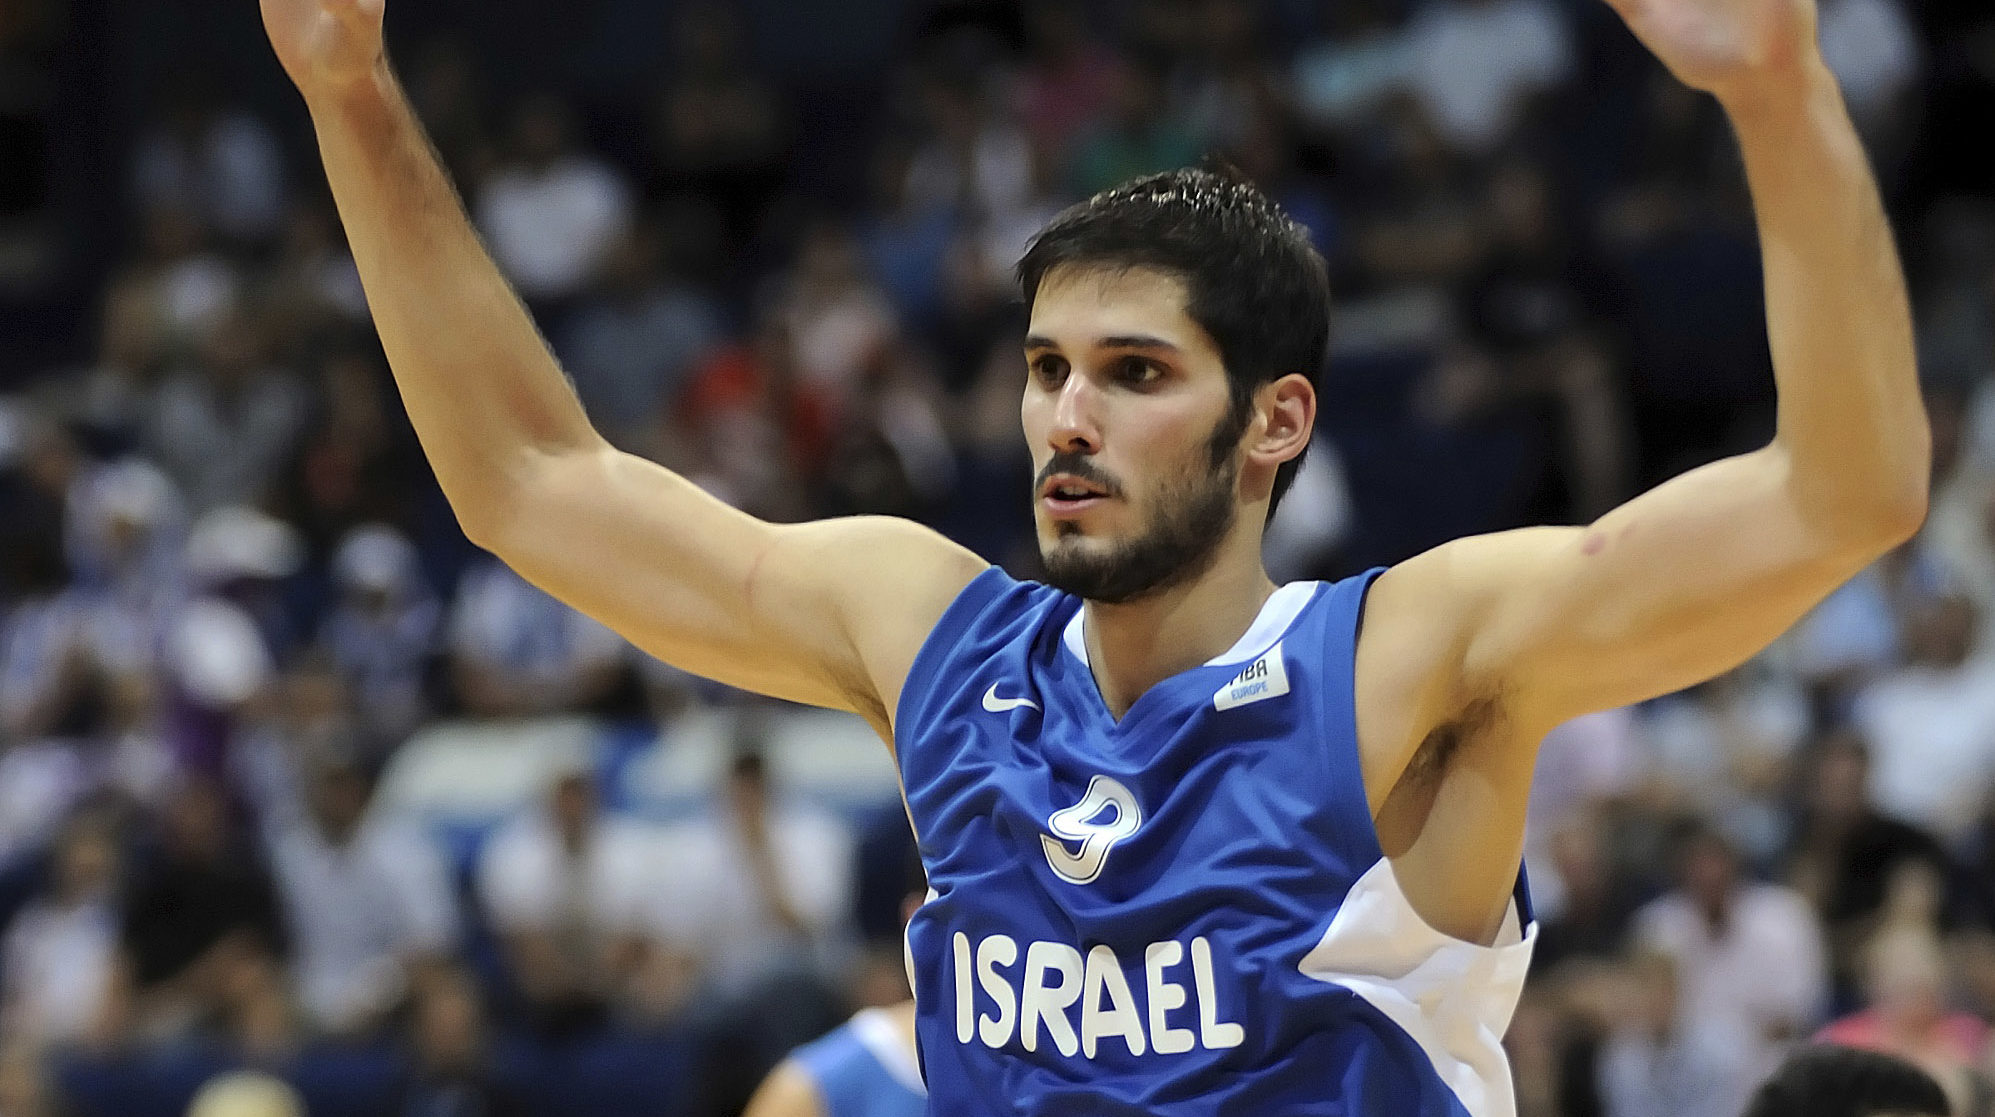 casspi raises his hands on the court, wearing an israel jersey